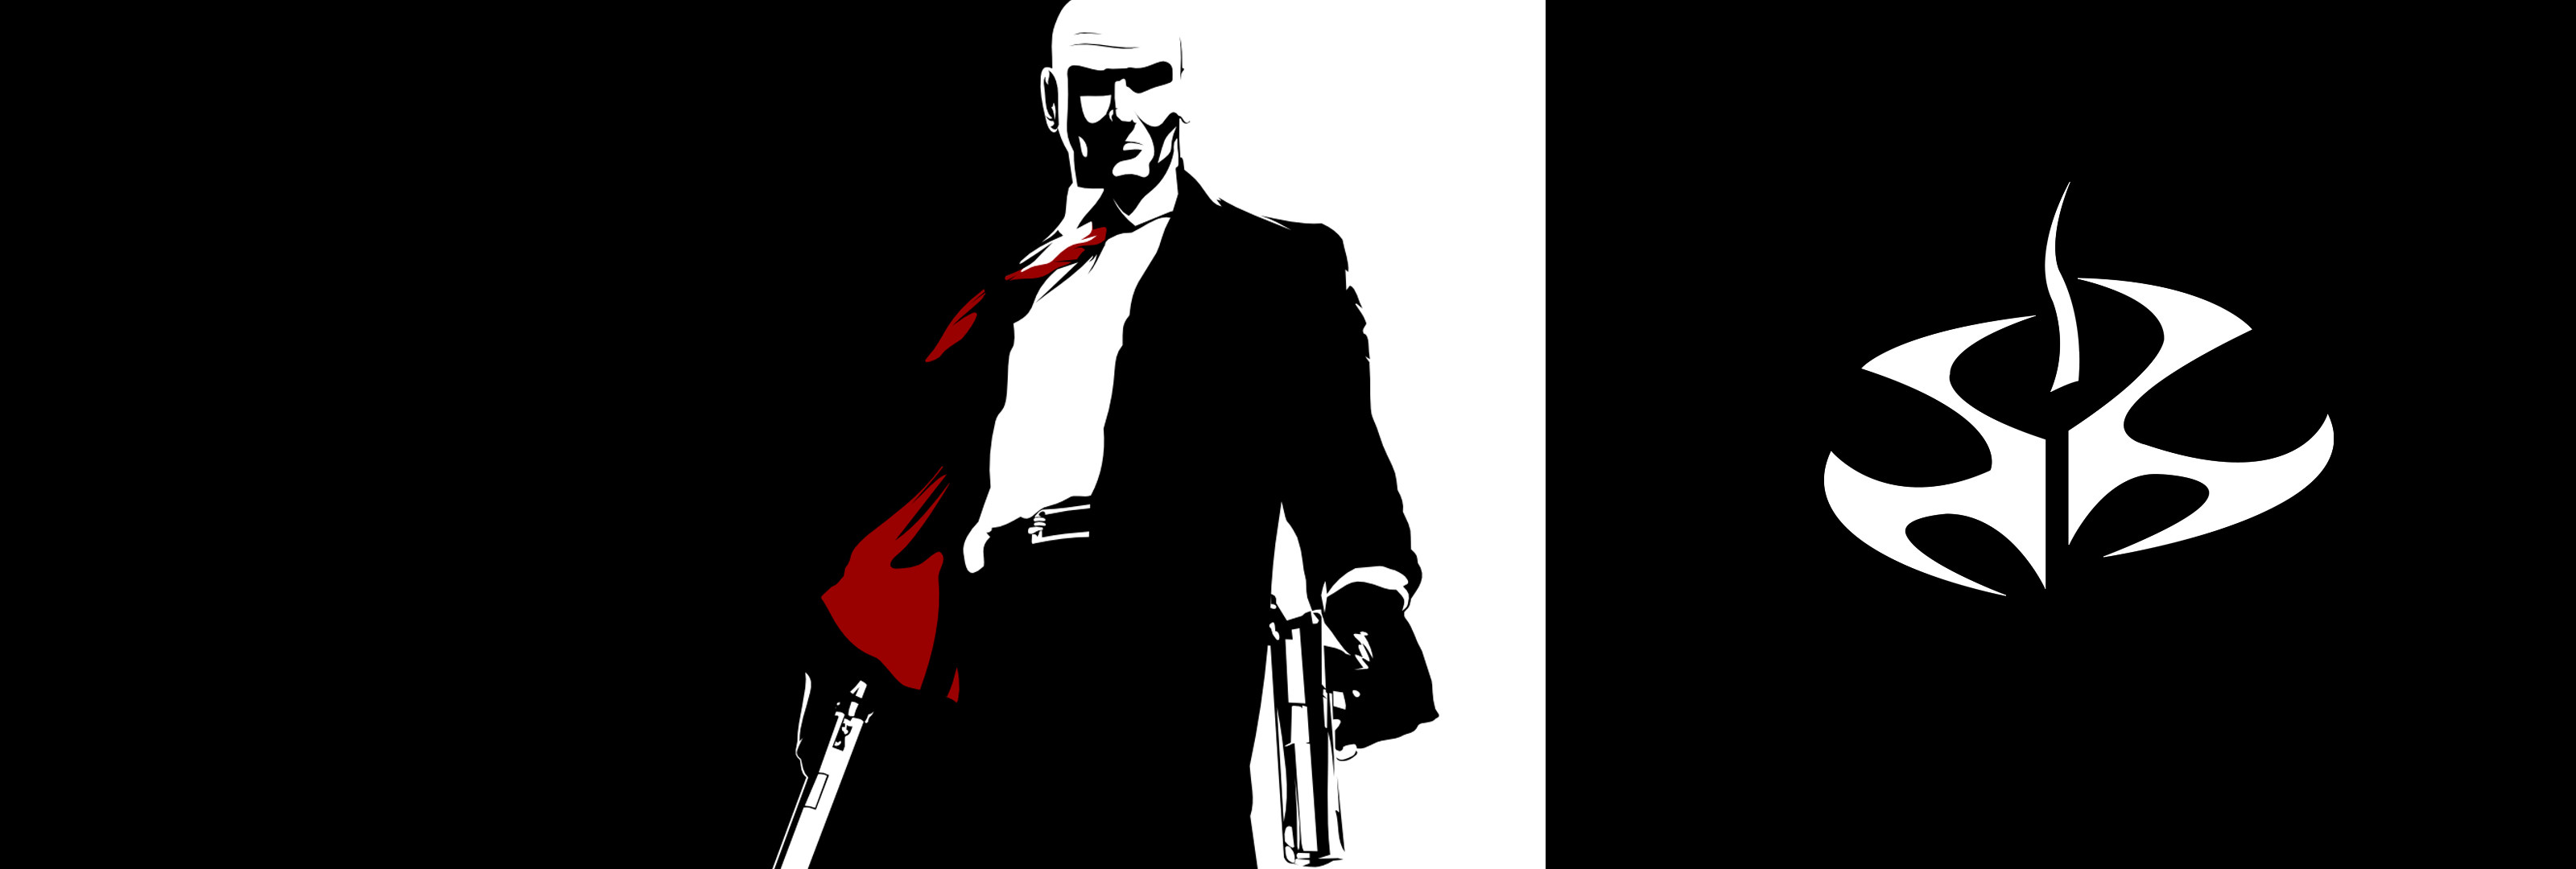 3200x1080 HD Wallpaper | Background ID:666461.  Video Game Hitman